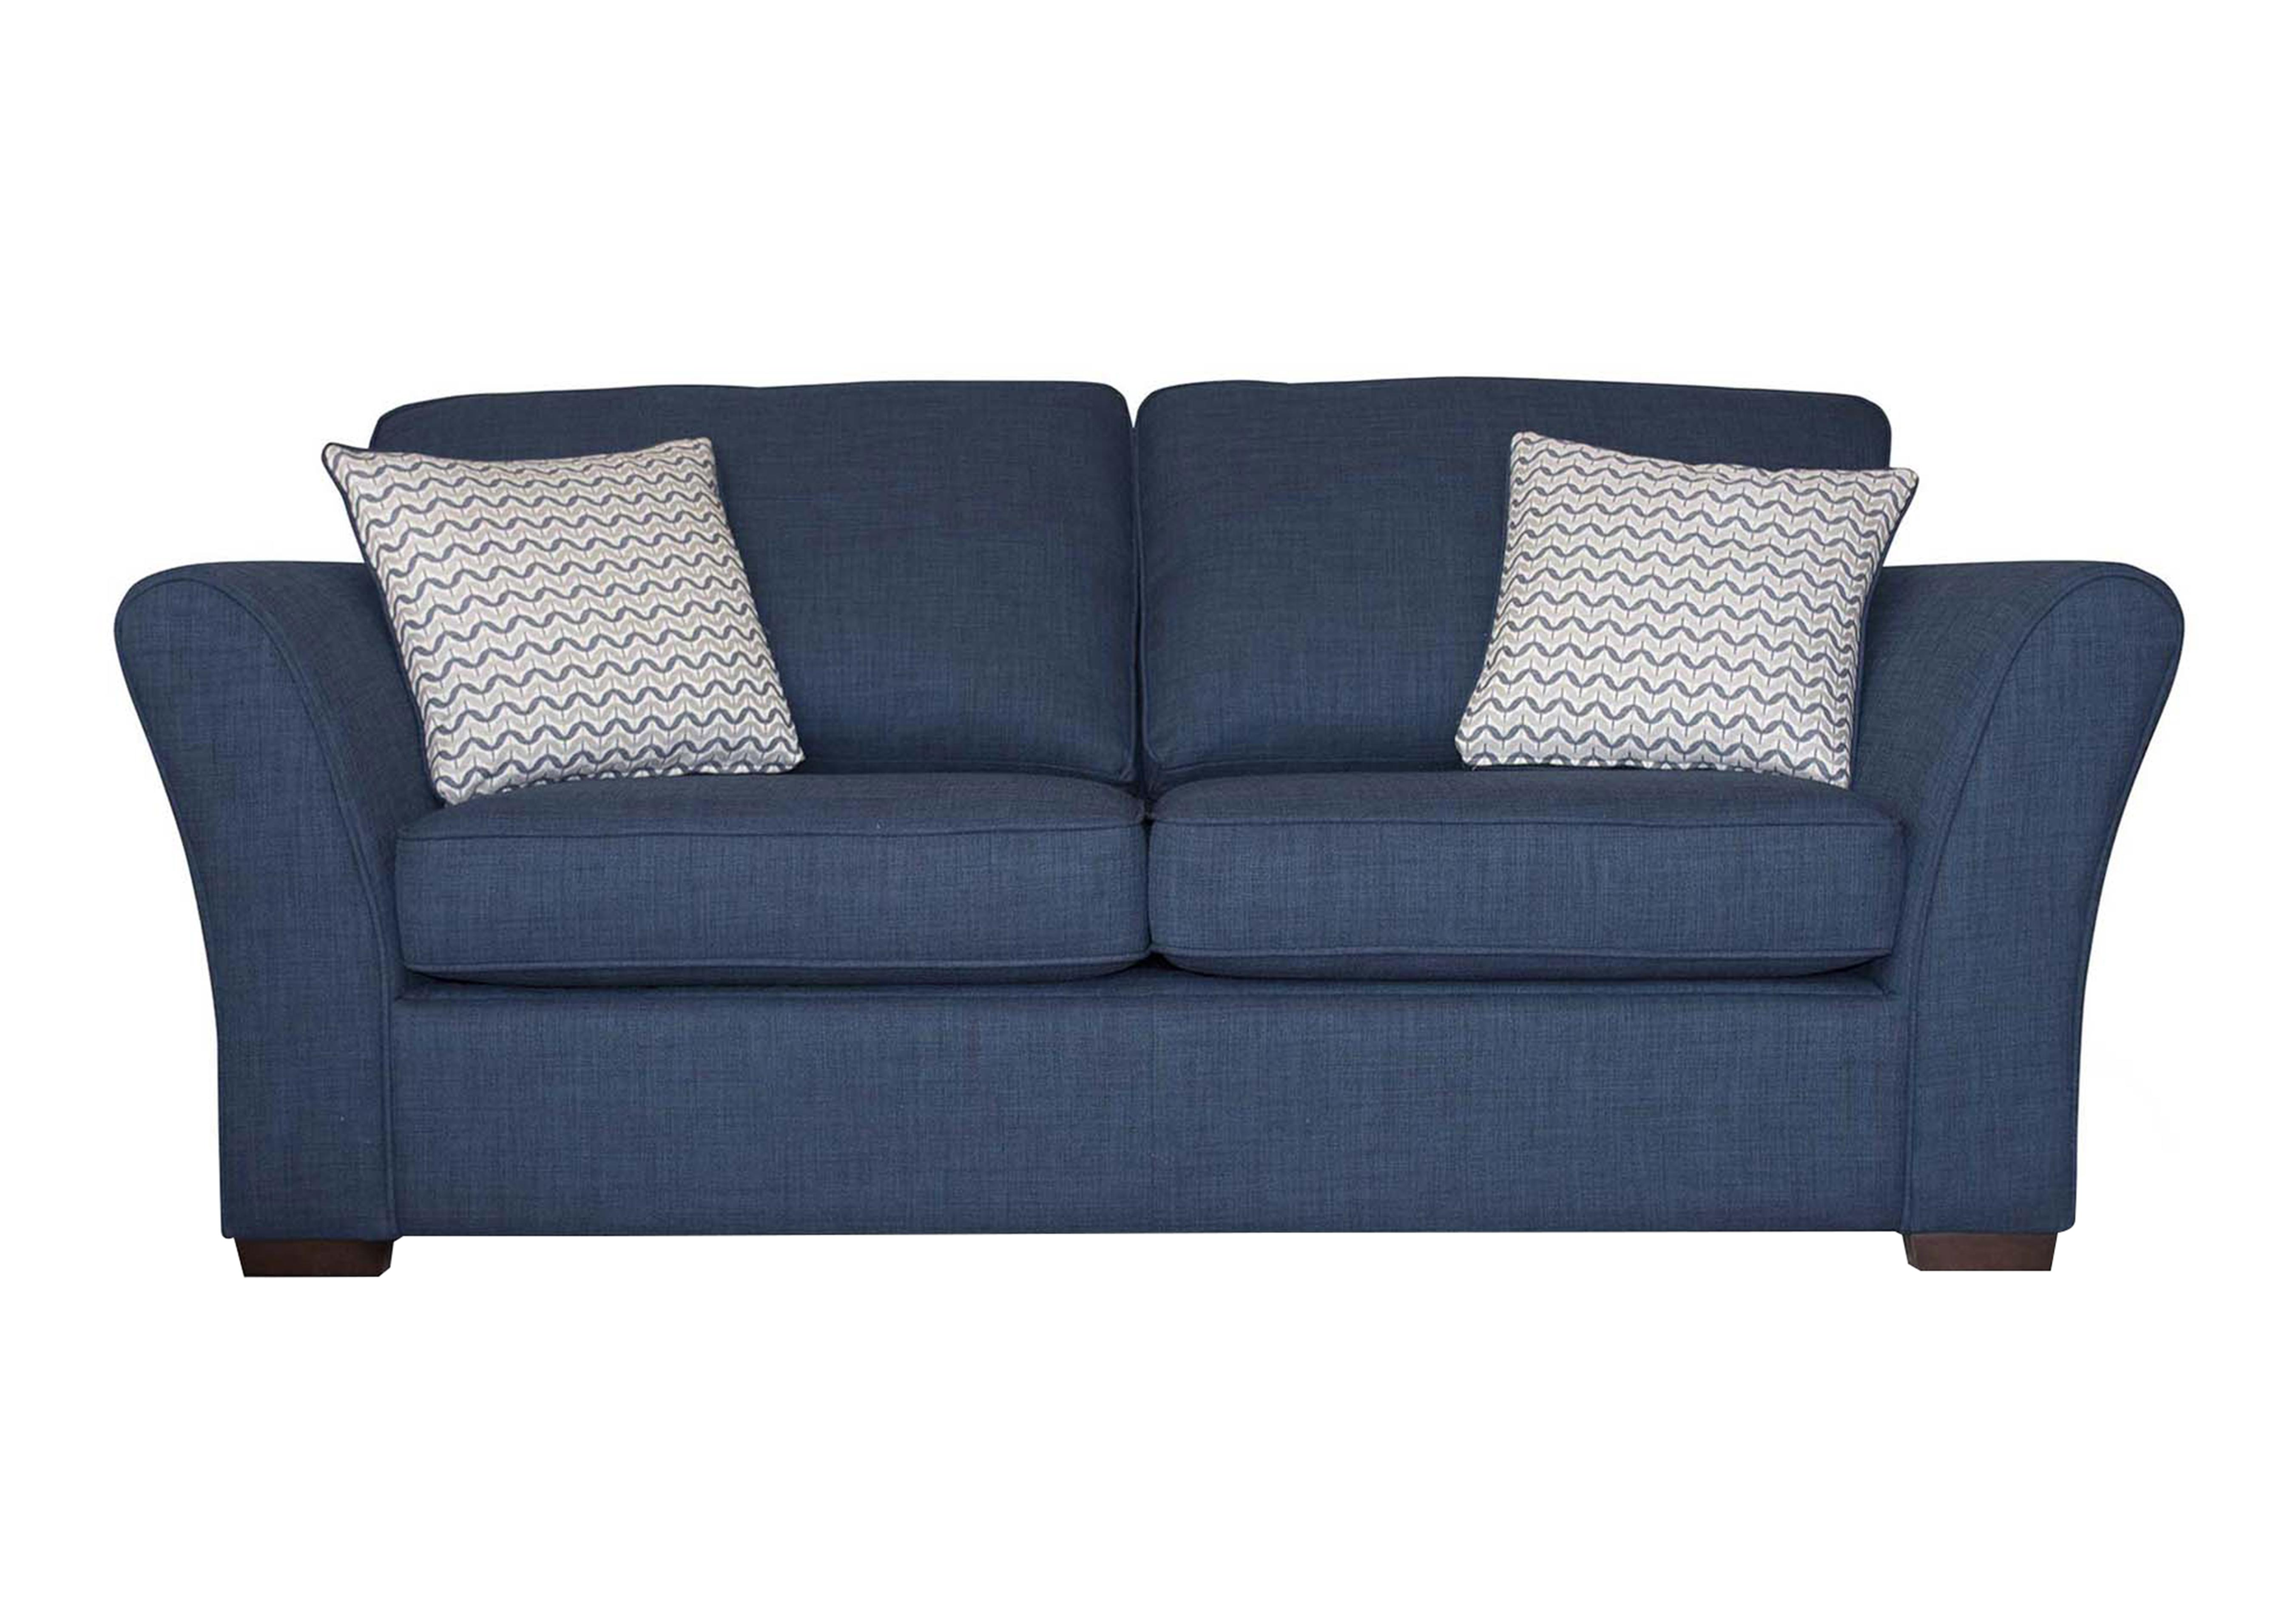 Twilight 2 Seater Fabric Sofa Bed